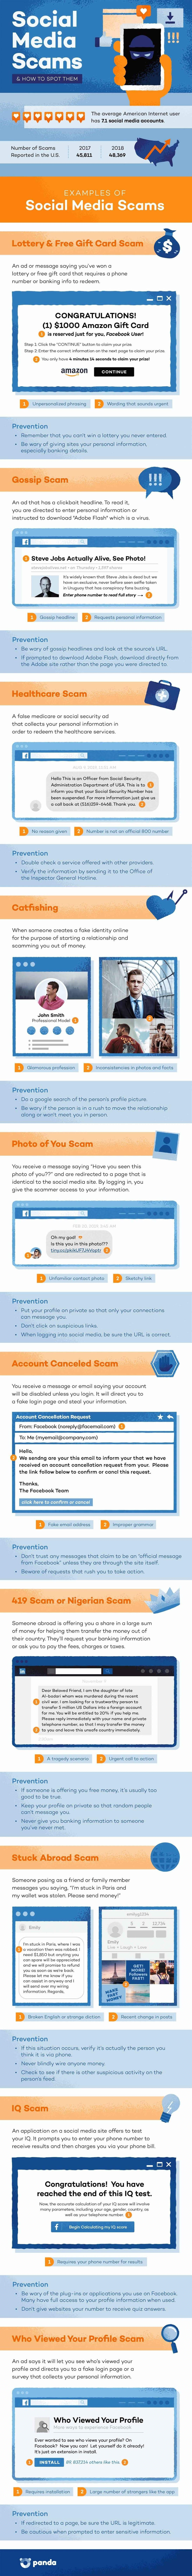 10 Scams of social media and how to locate them #infographic